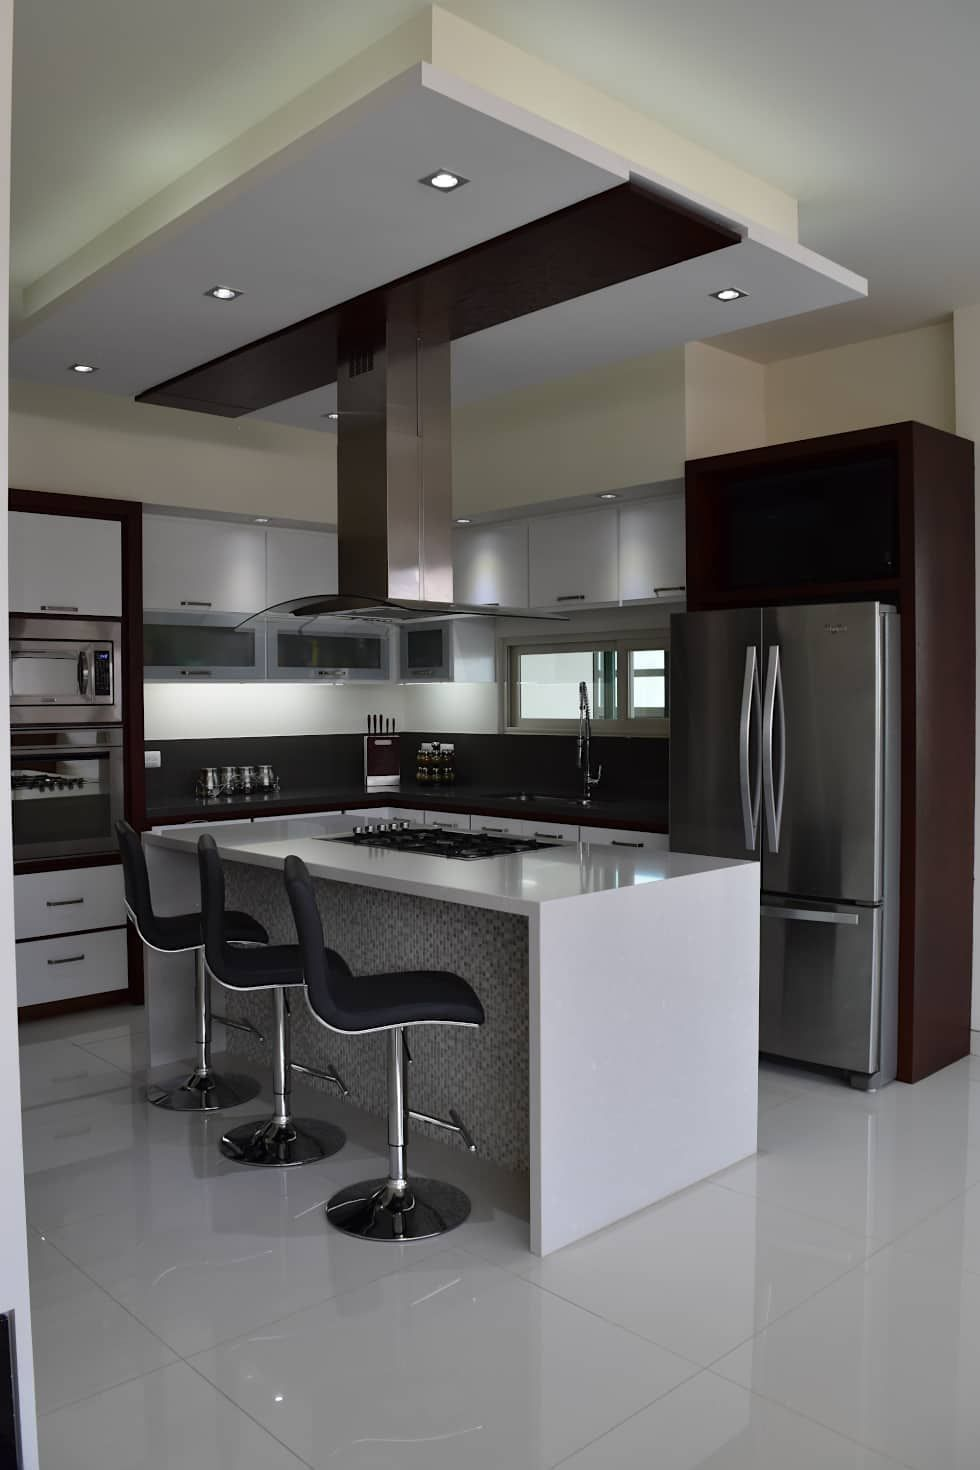 Kitchen ideas home decor furniture interior kitchens also magnificient small design for yyyy rh pinterest